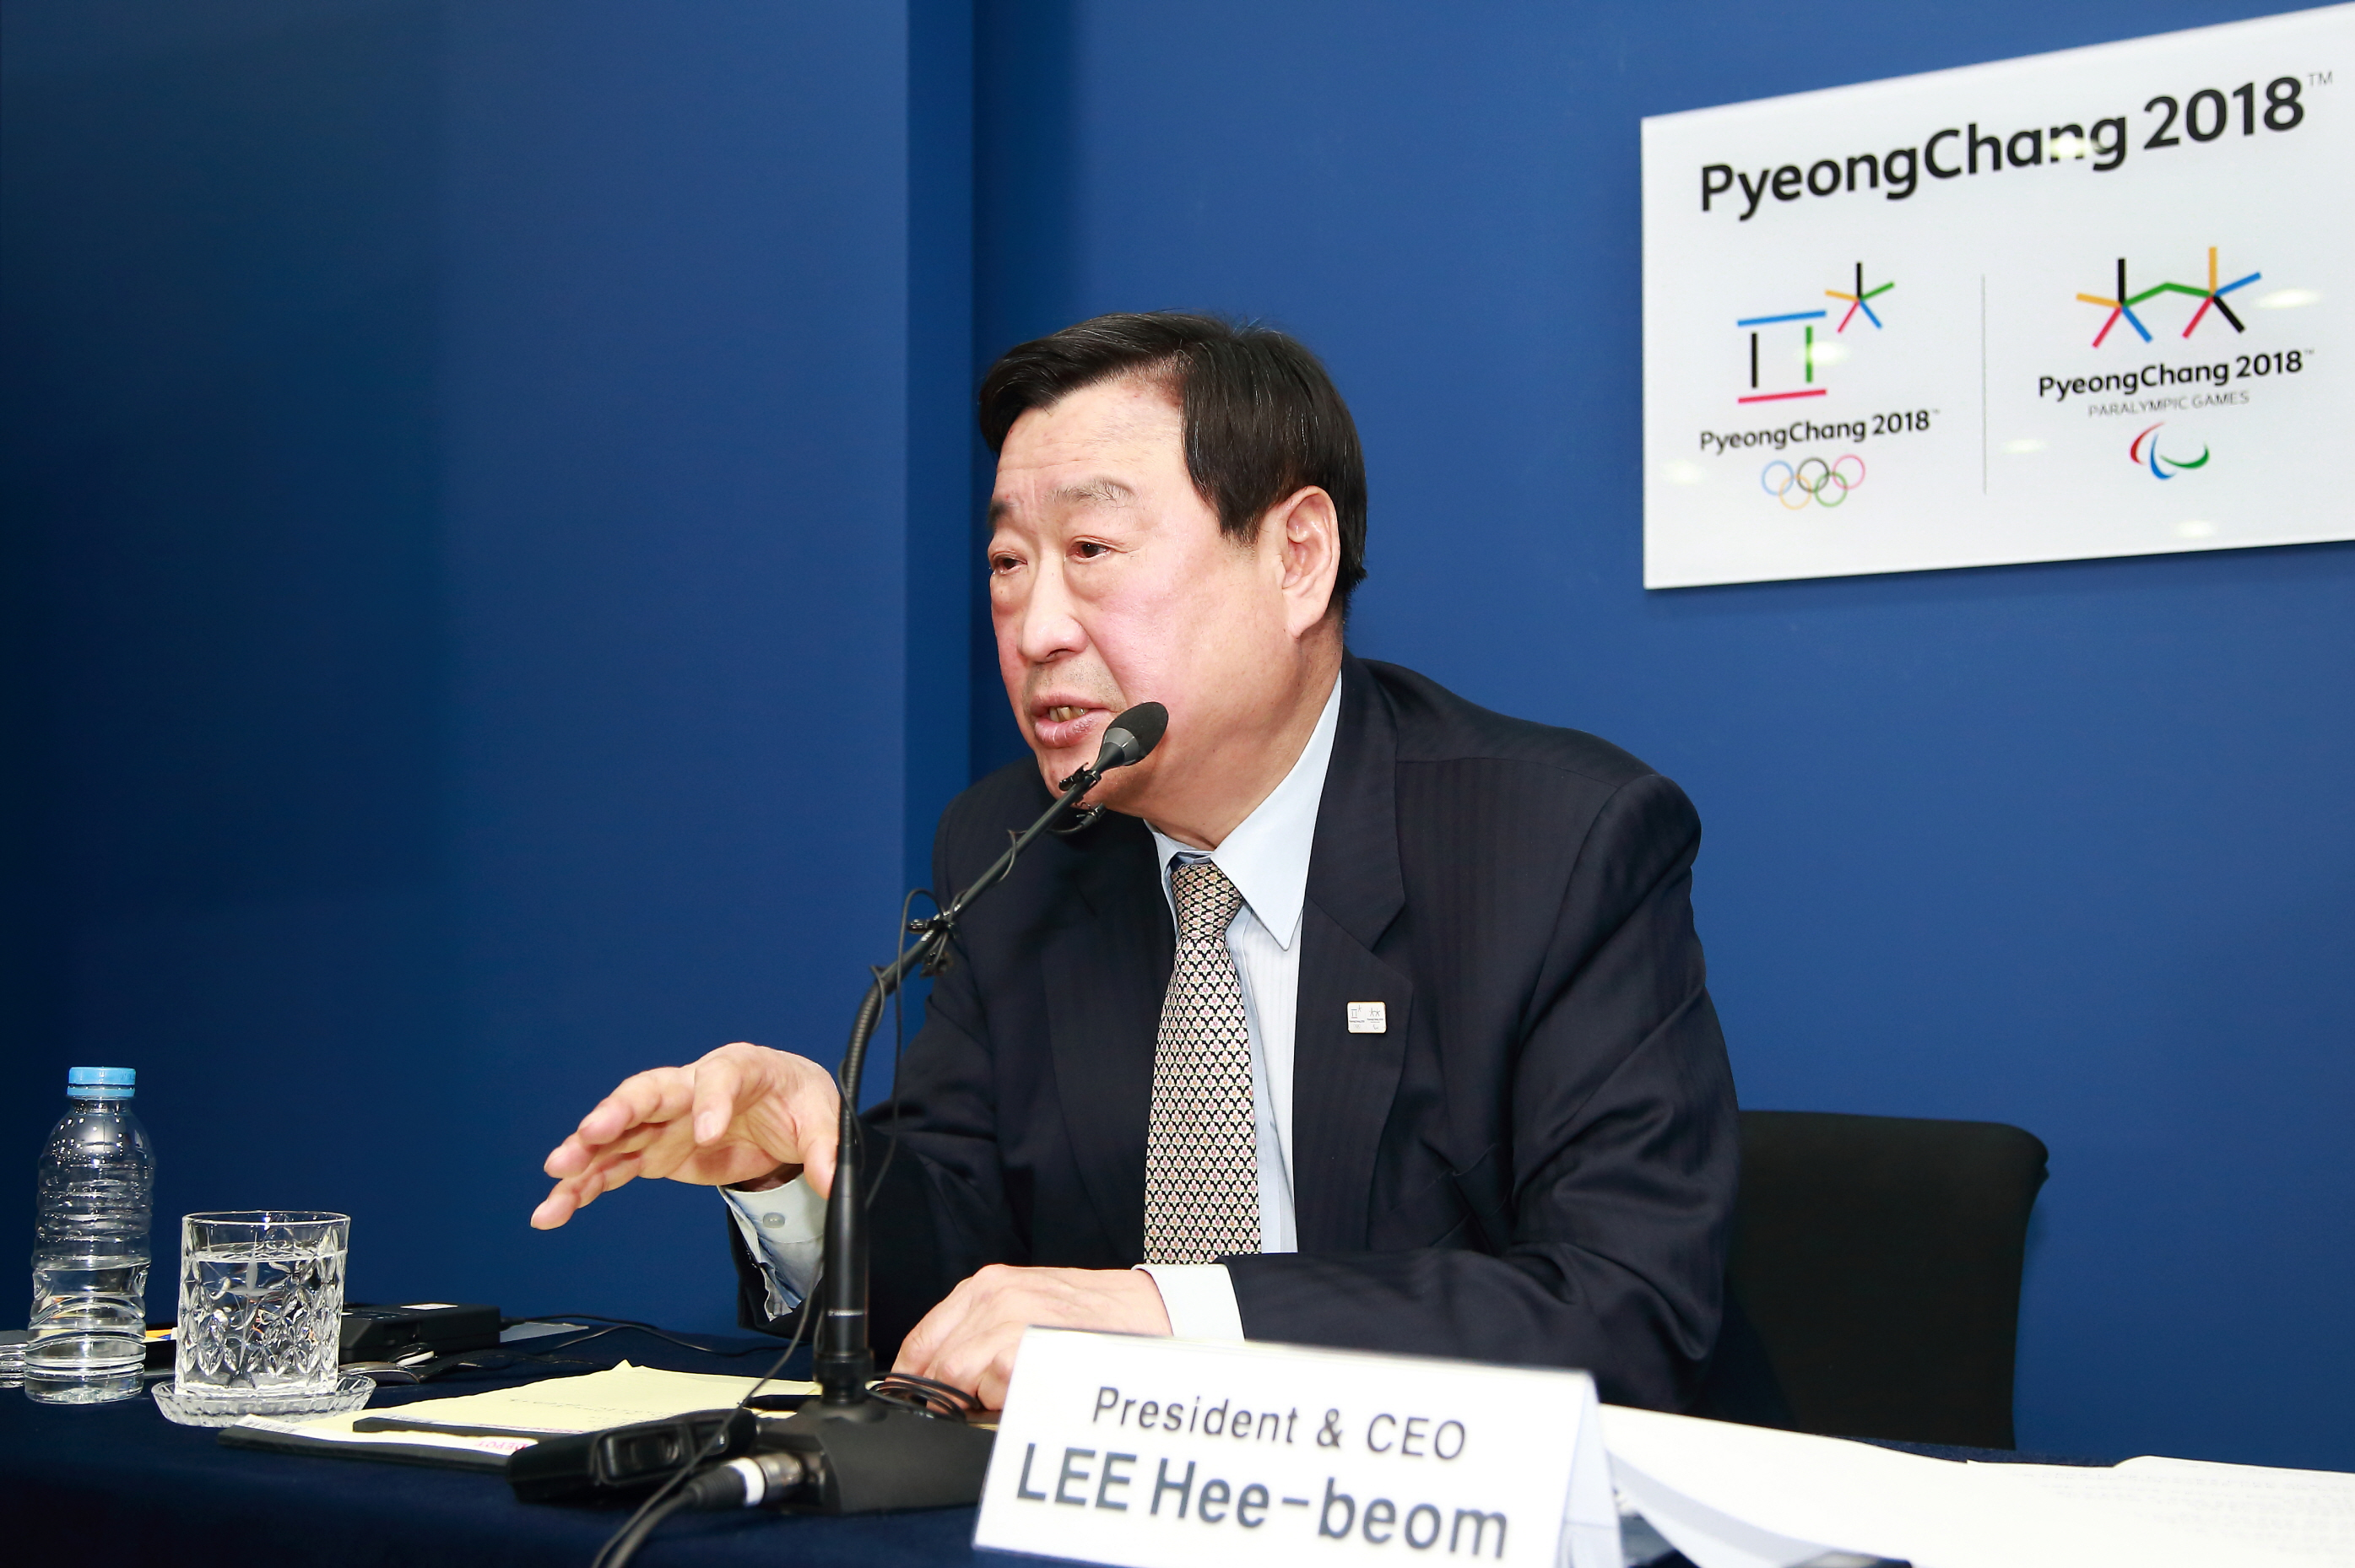 Lee Hee-beom, president & CEO of the PyeongChang Organizing Committee for the 2018 Olympic and Paralympic Winter Games.